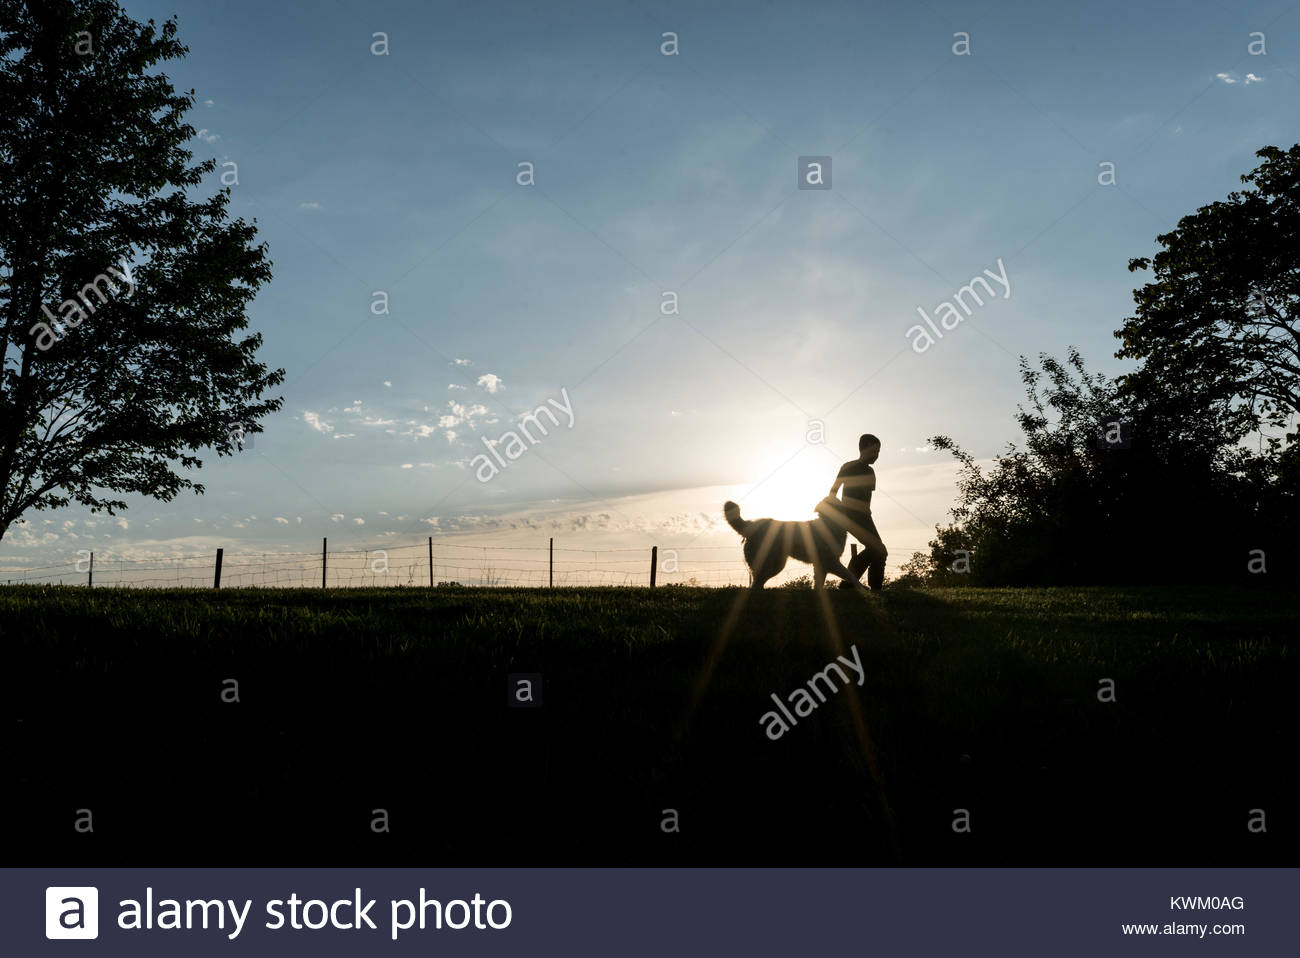 Silhouette boy with dog on field against sky during sunset - Stock Image